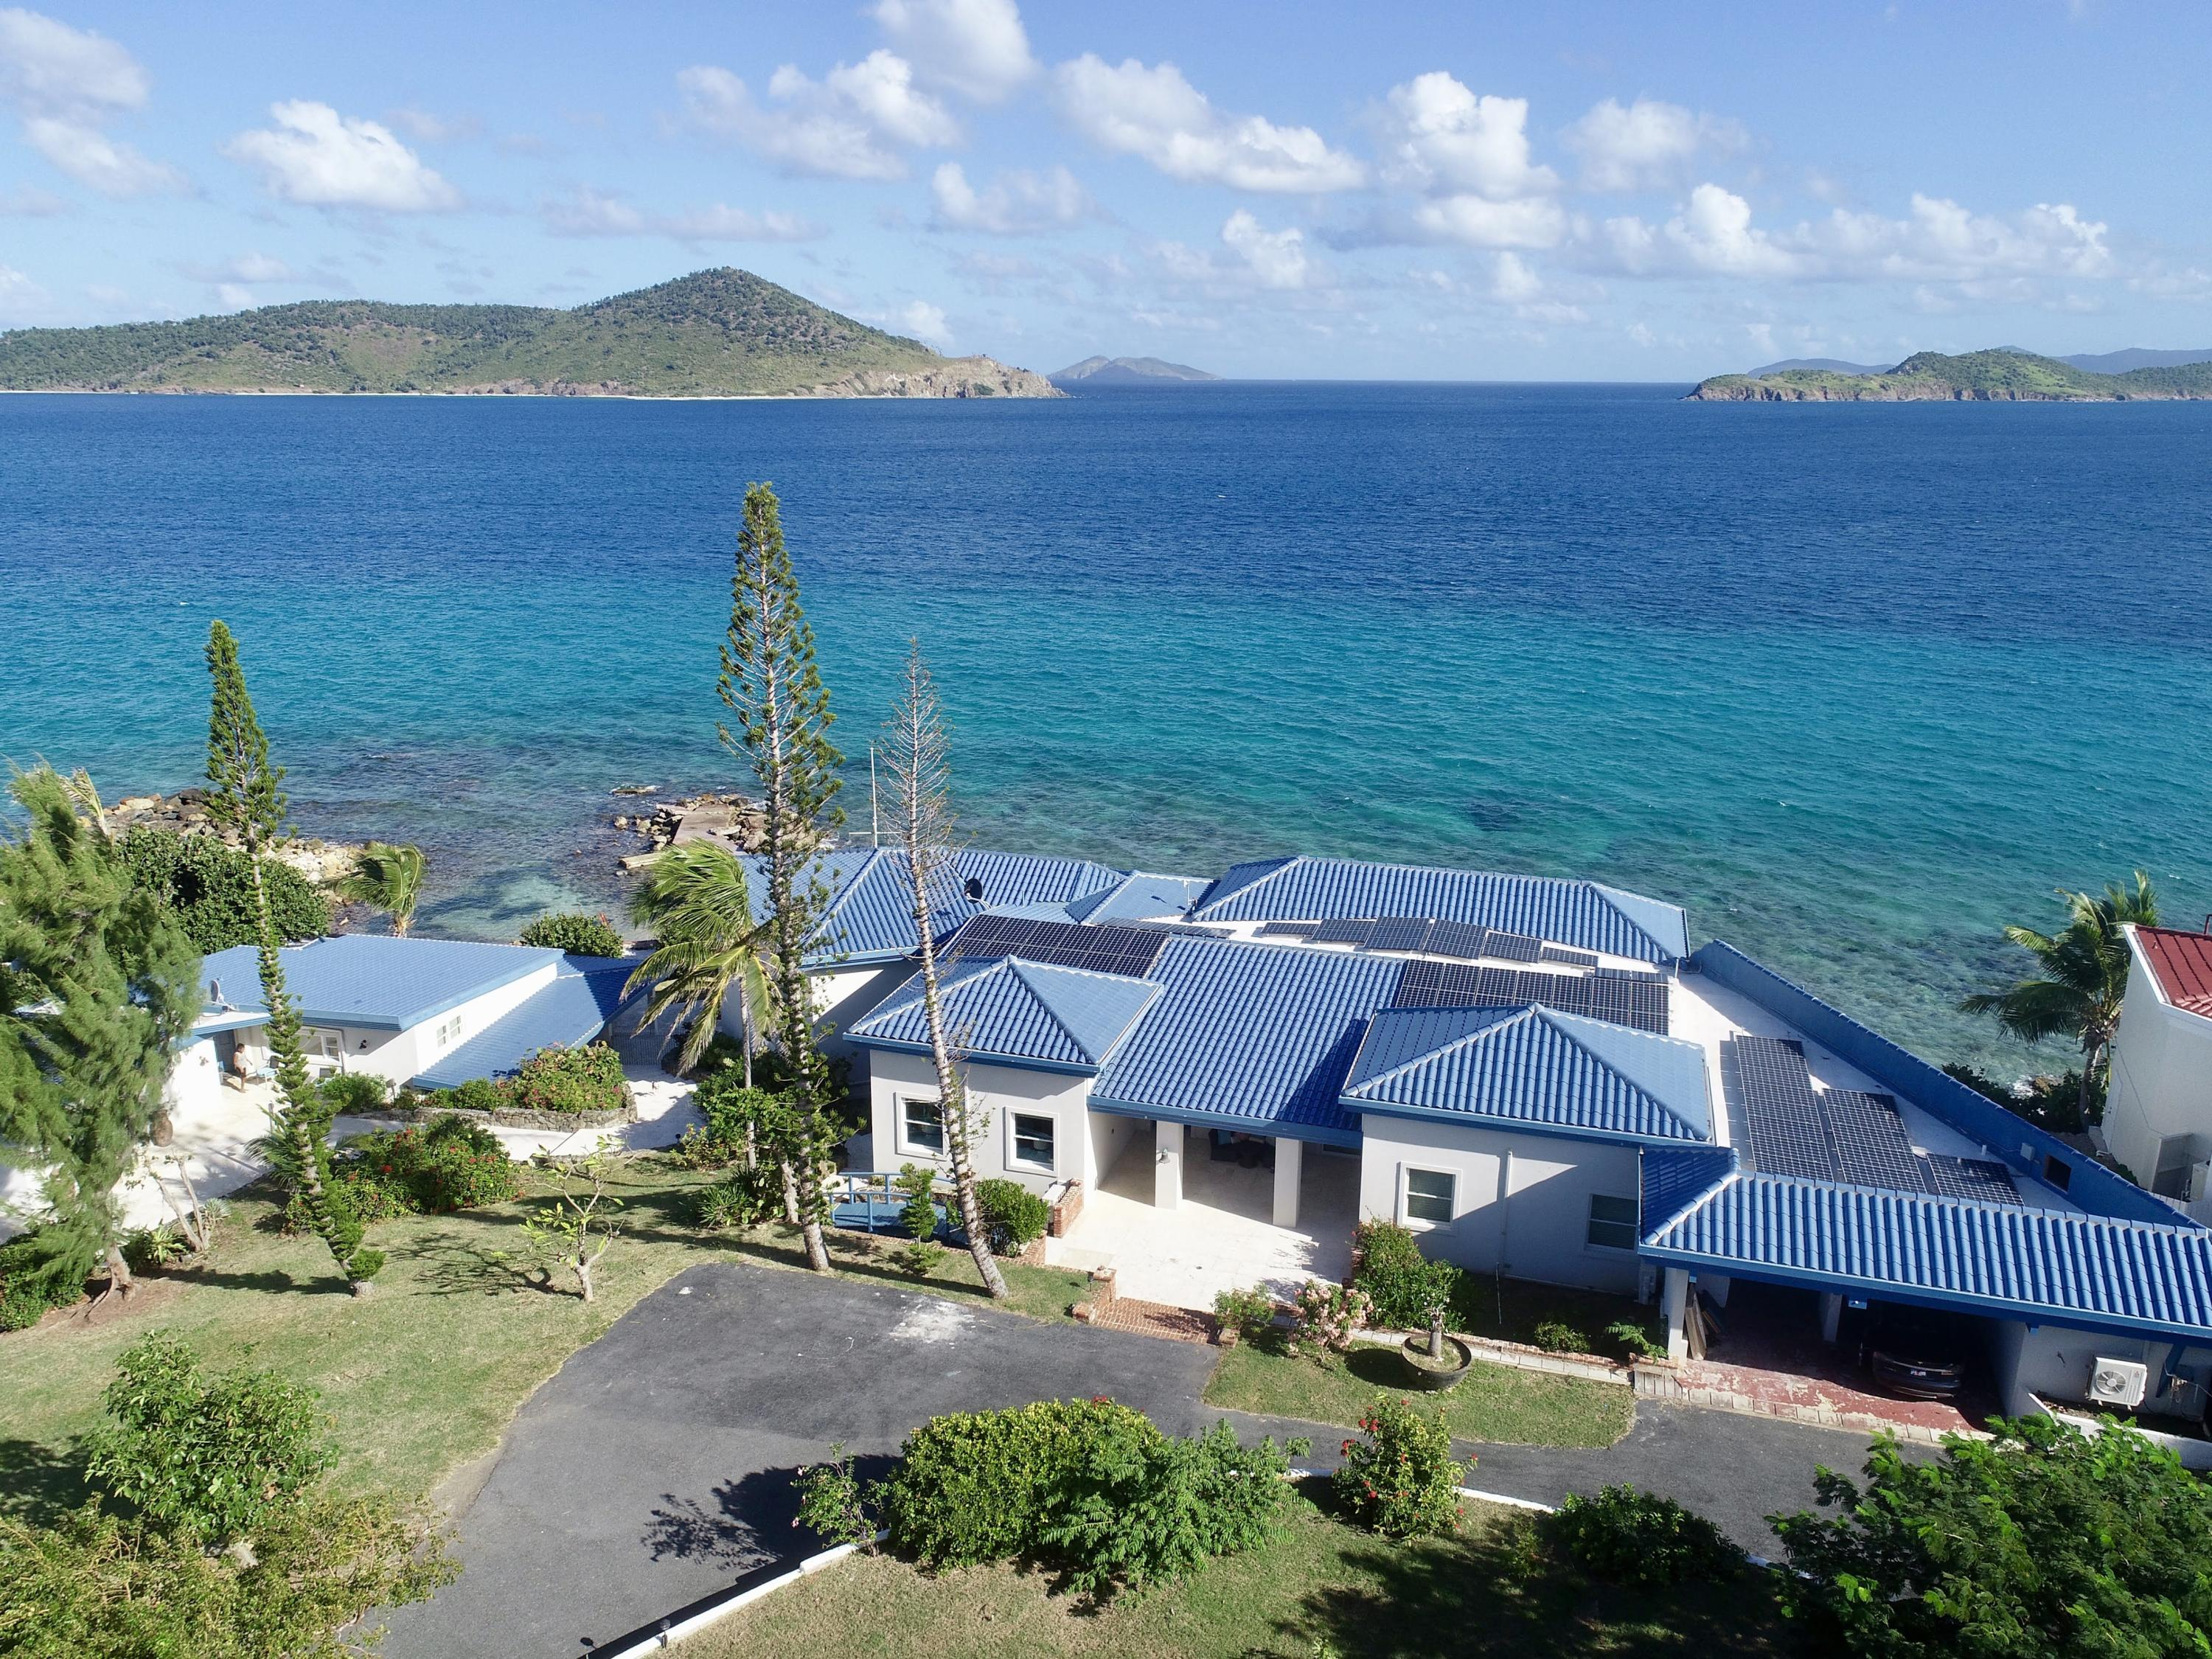 Multi-Family Home for Sale at 11B-7 Smith Bay EE 11B-7 Smith Bay EE St Thomas, Virgin Islands 00802 United States Virgin Islands